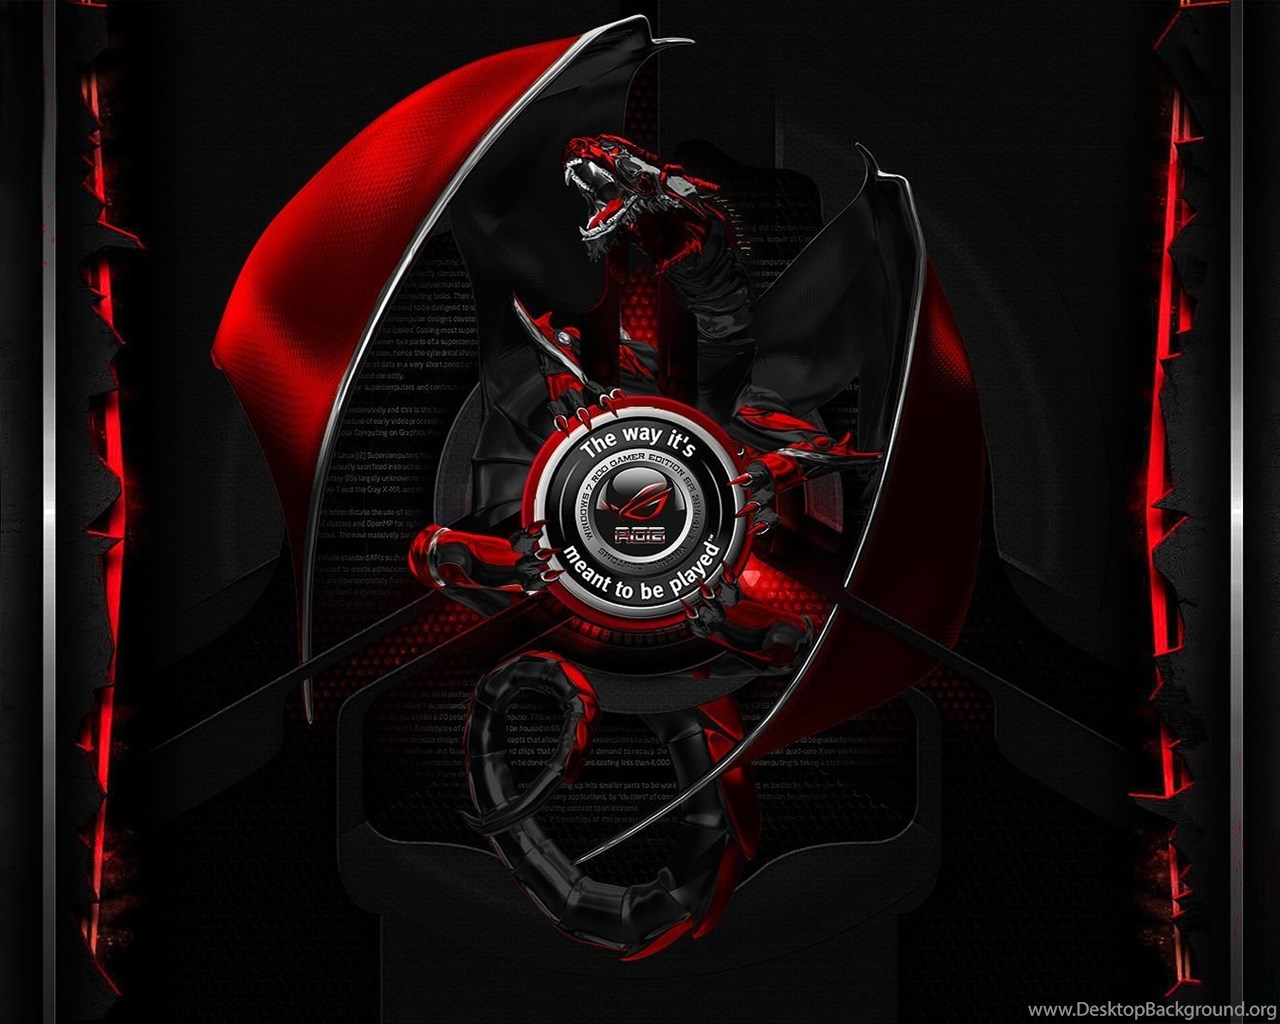 Wallpapers Msi Dragon Edition Rog Led Jpg 1920x1080 Desktop Background